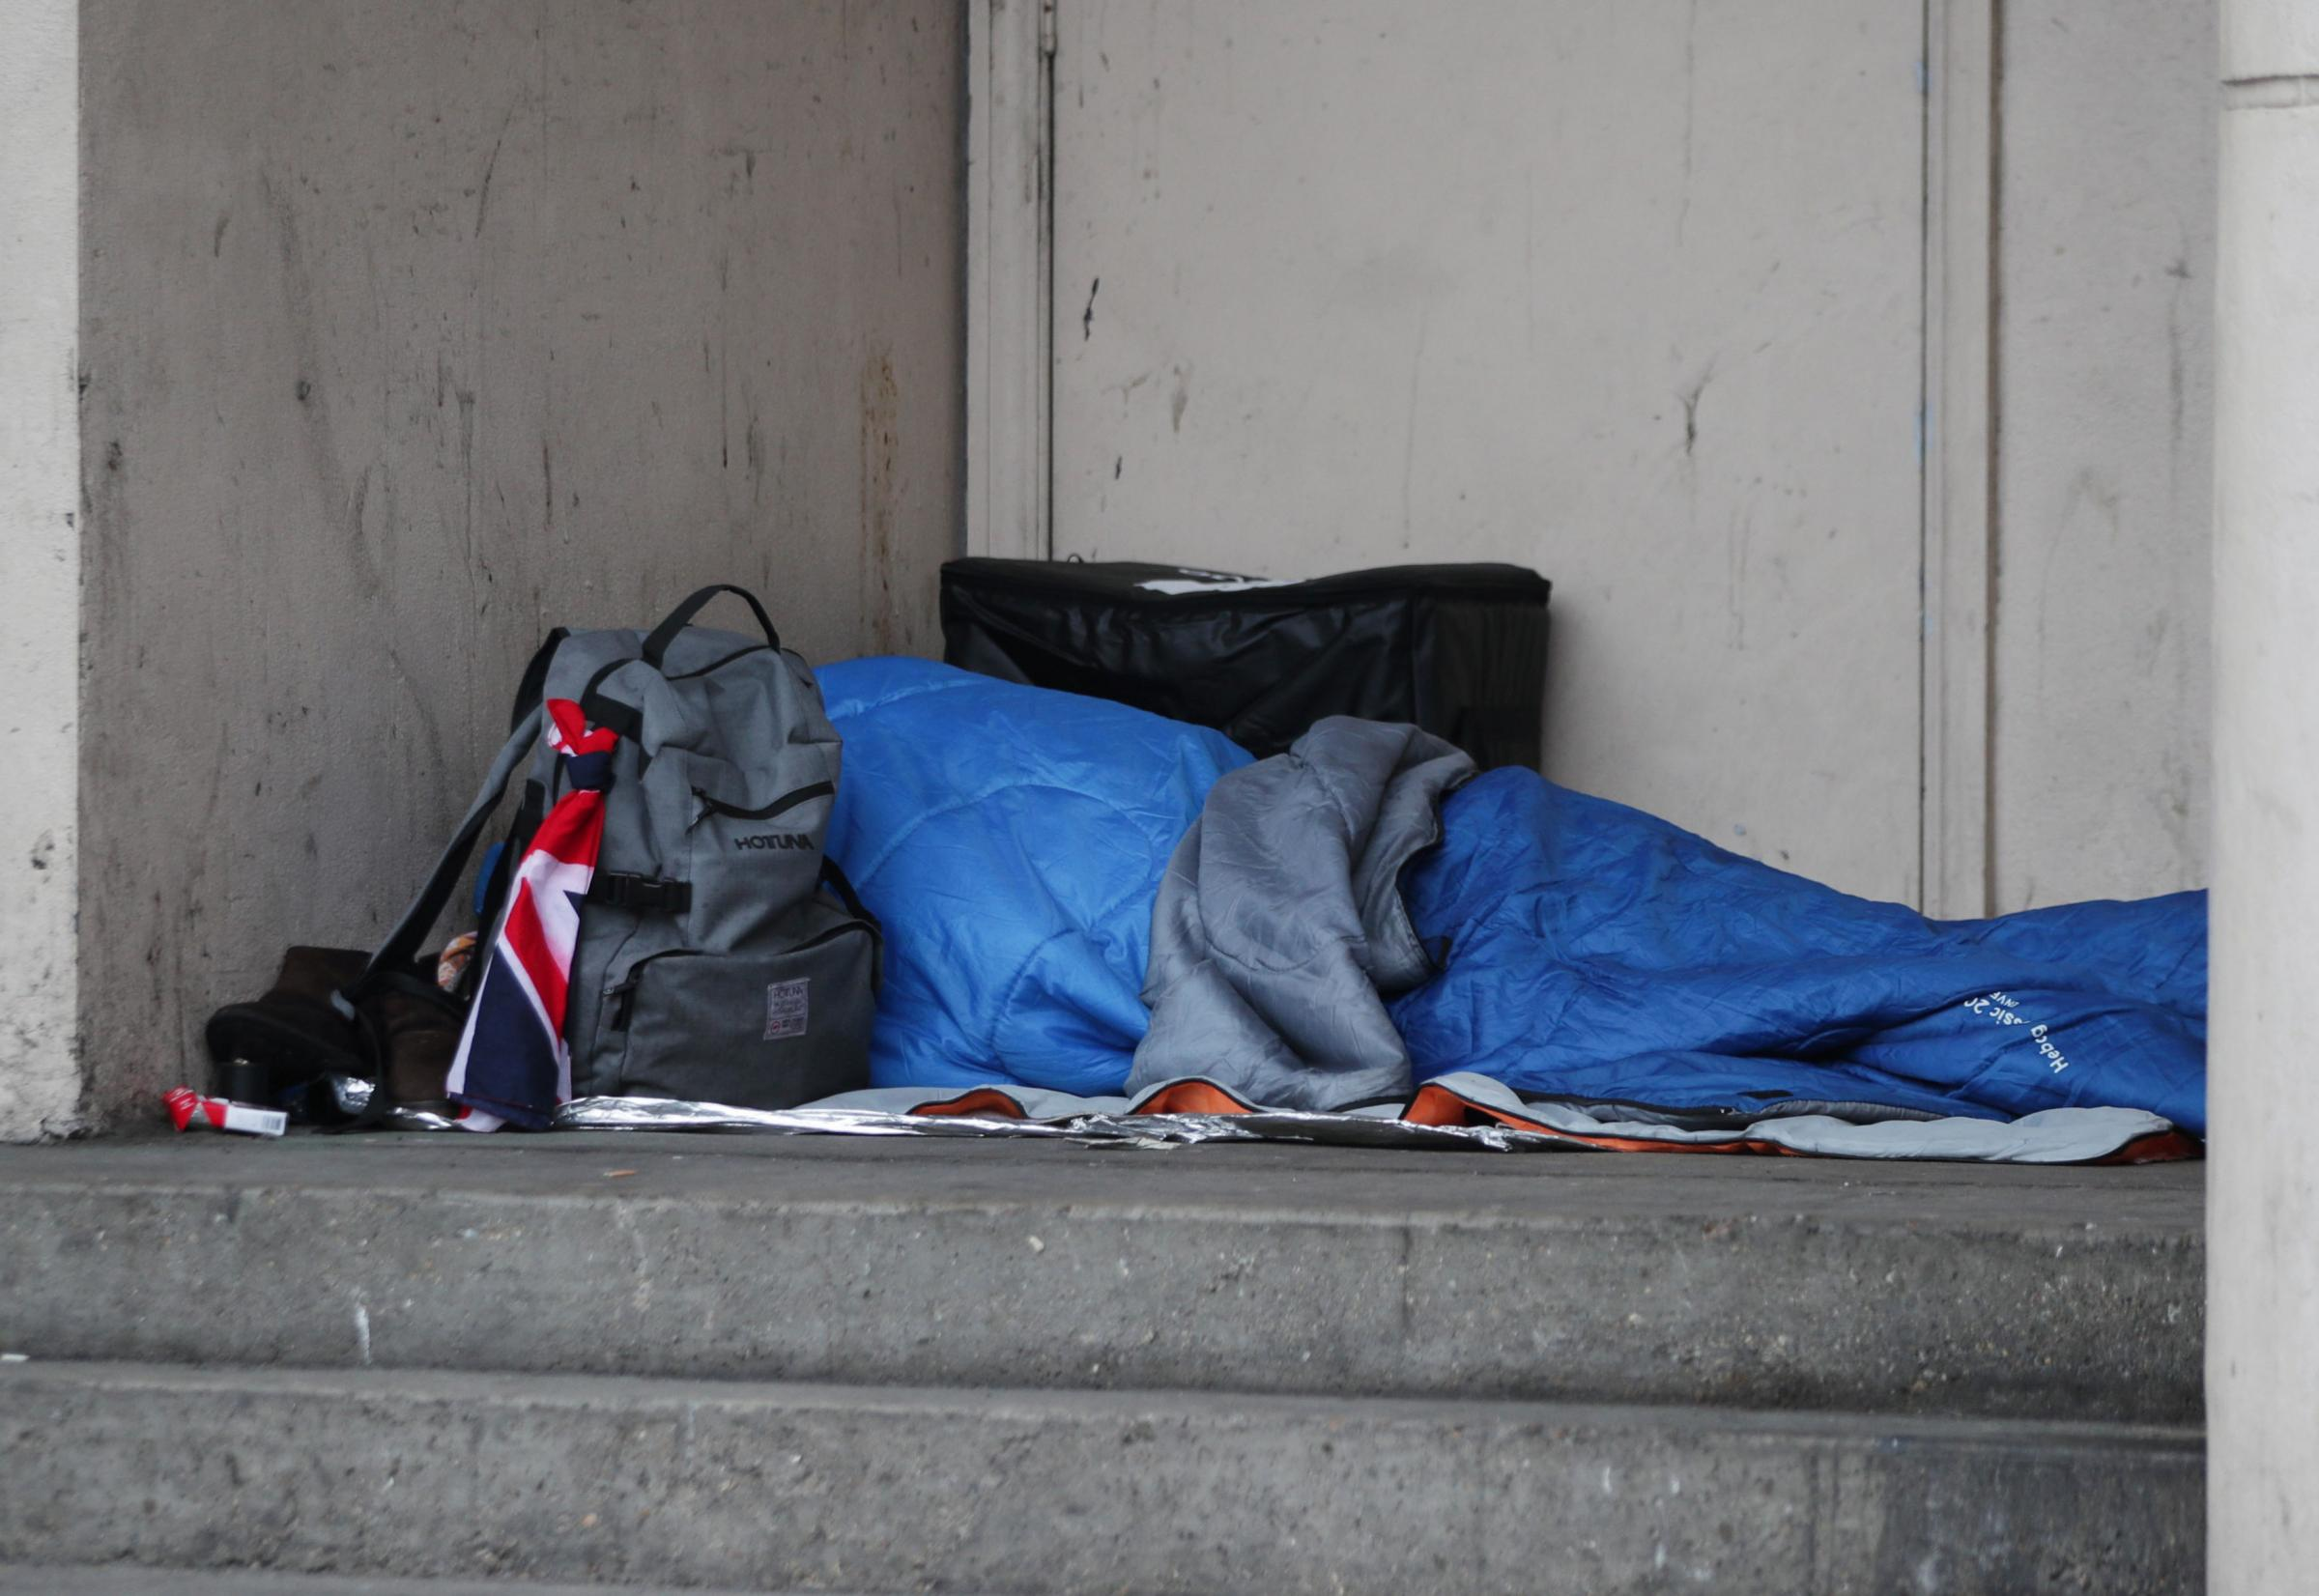 Letters to the Editor: Worrying cuts to homeless service